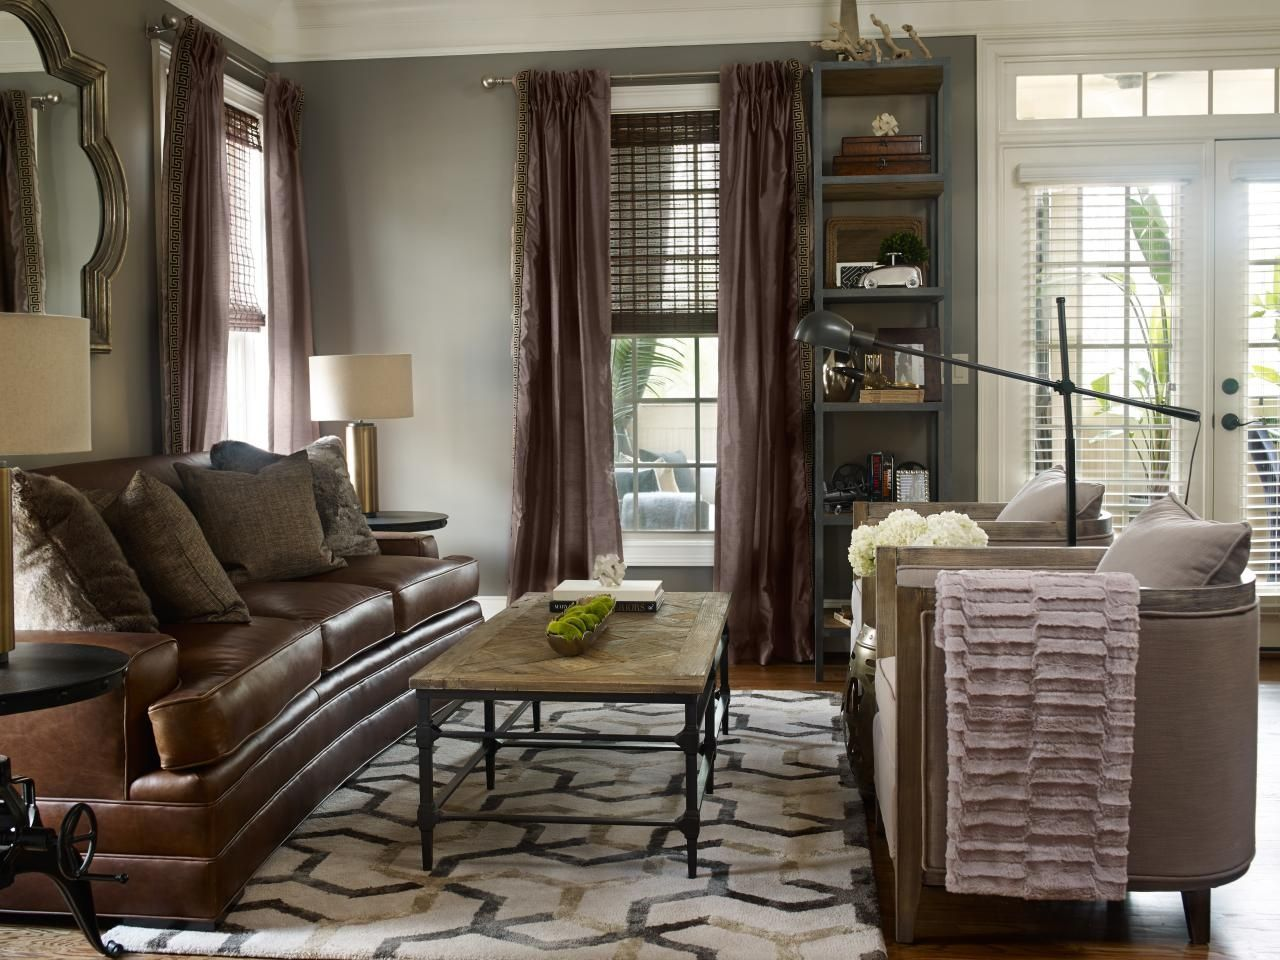 Accent Chairs To Go With Brown Leather Sofa Accent Chair To Match Brown Leather Sofa Living Room Ideas